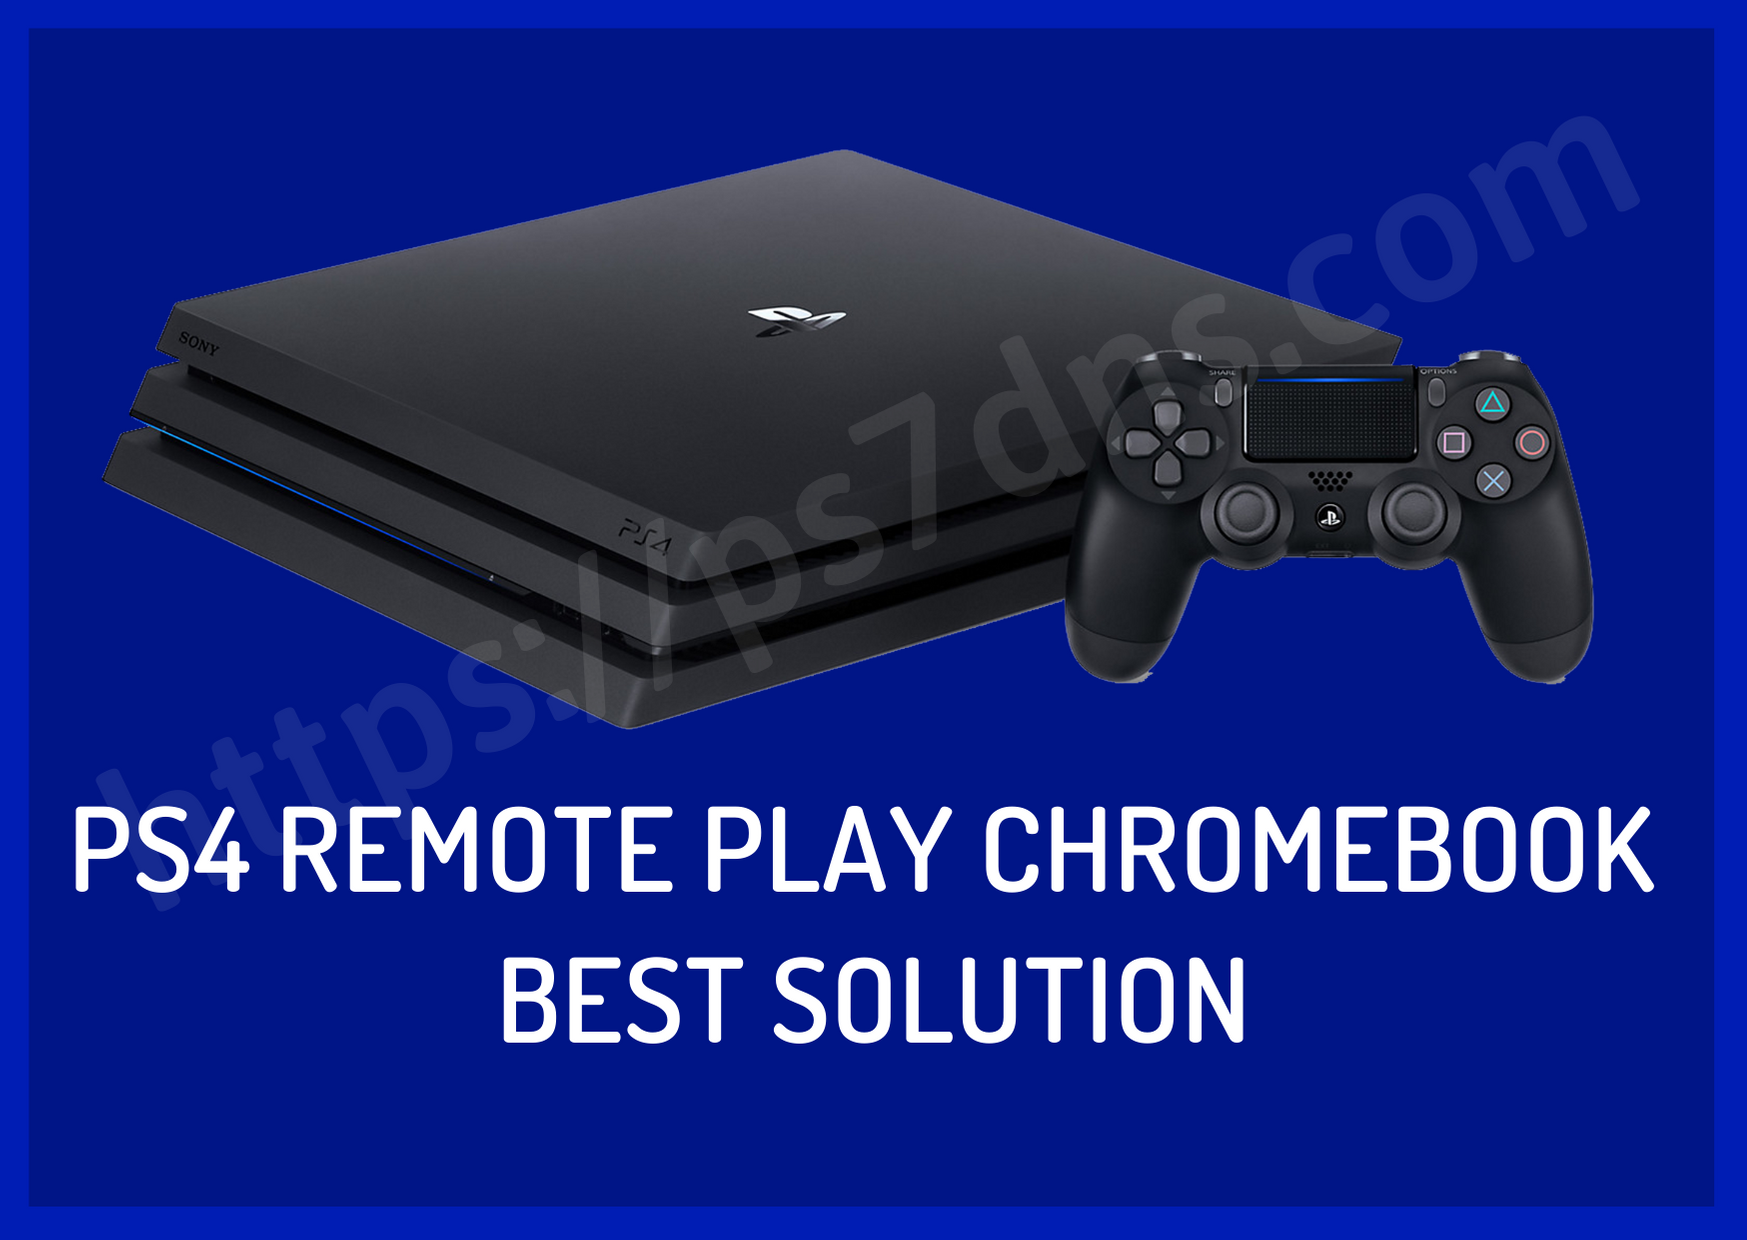 PS4 Remote Play Chromebook - Best Solution